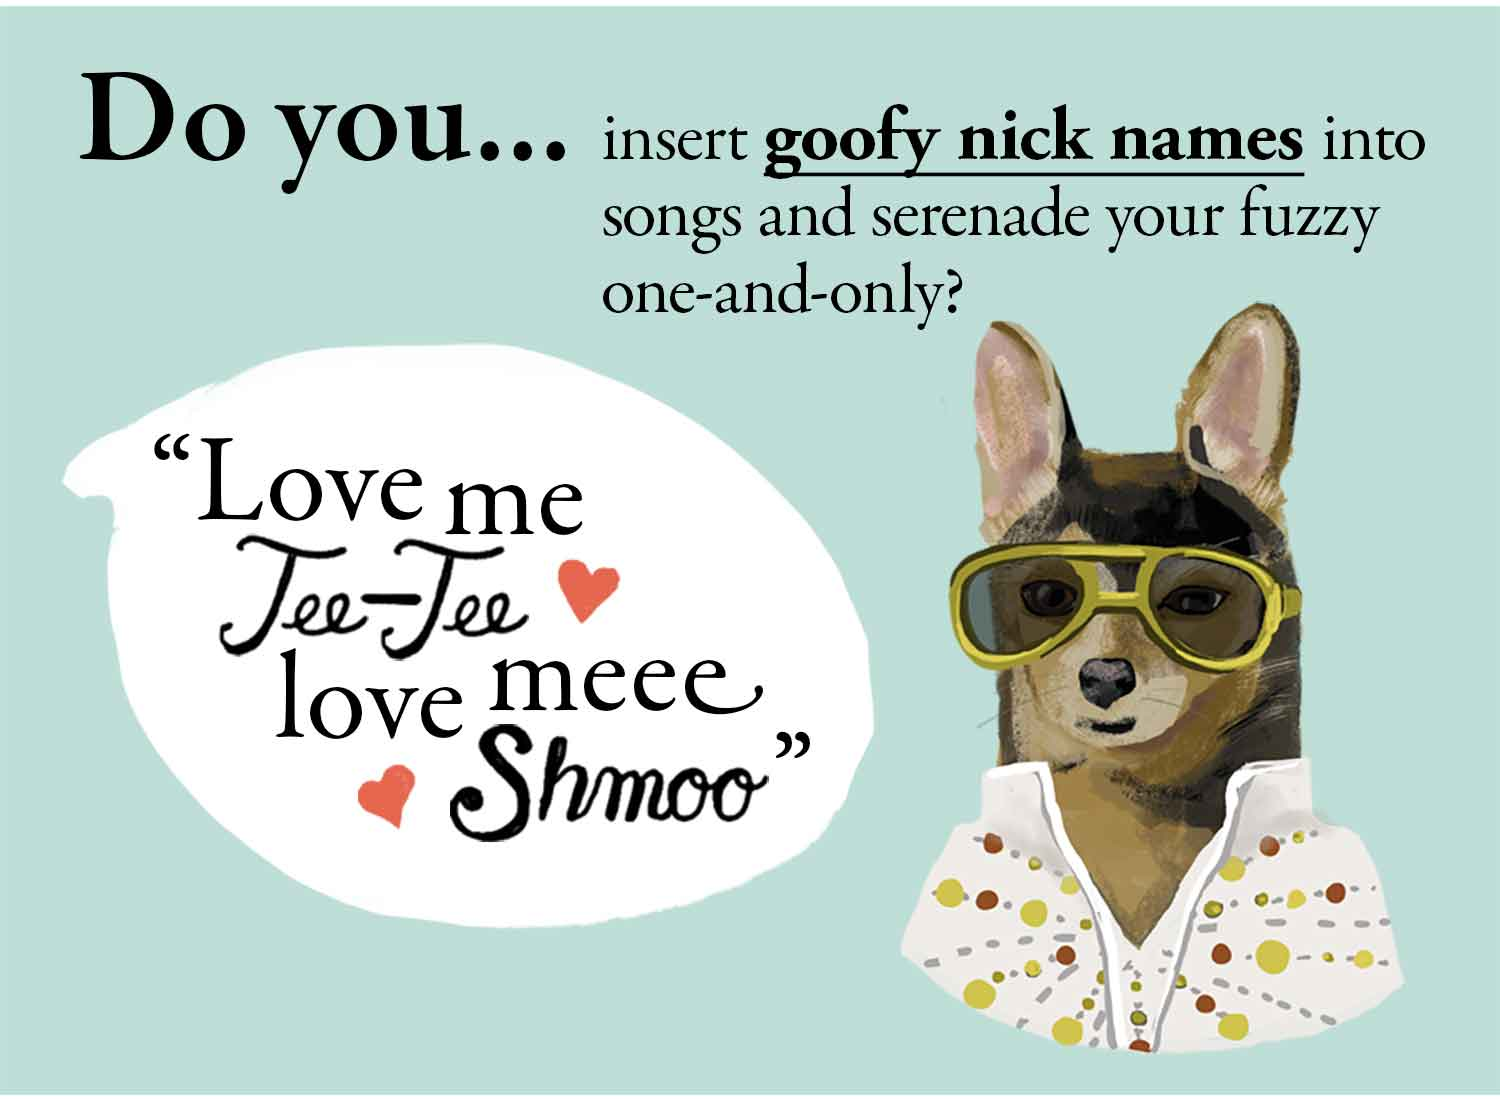 Do you sing to your dog or cat? Do you call your pet funny nicknames?